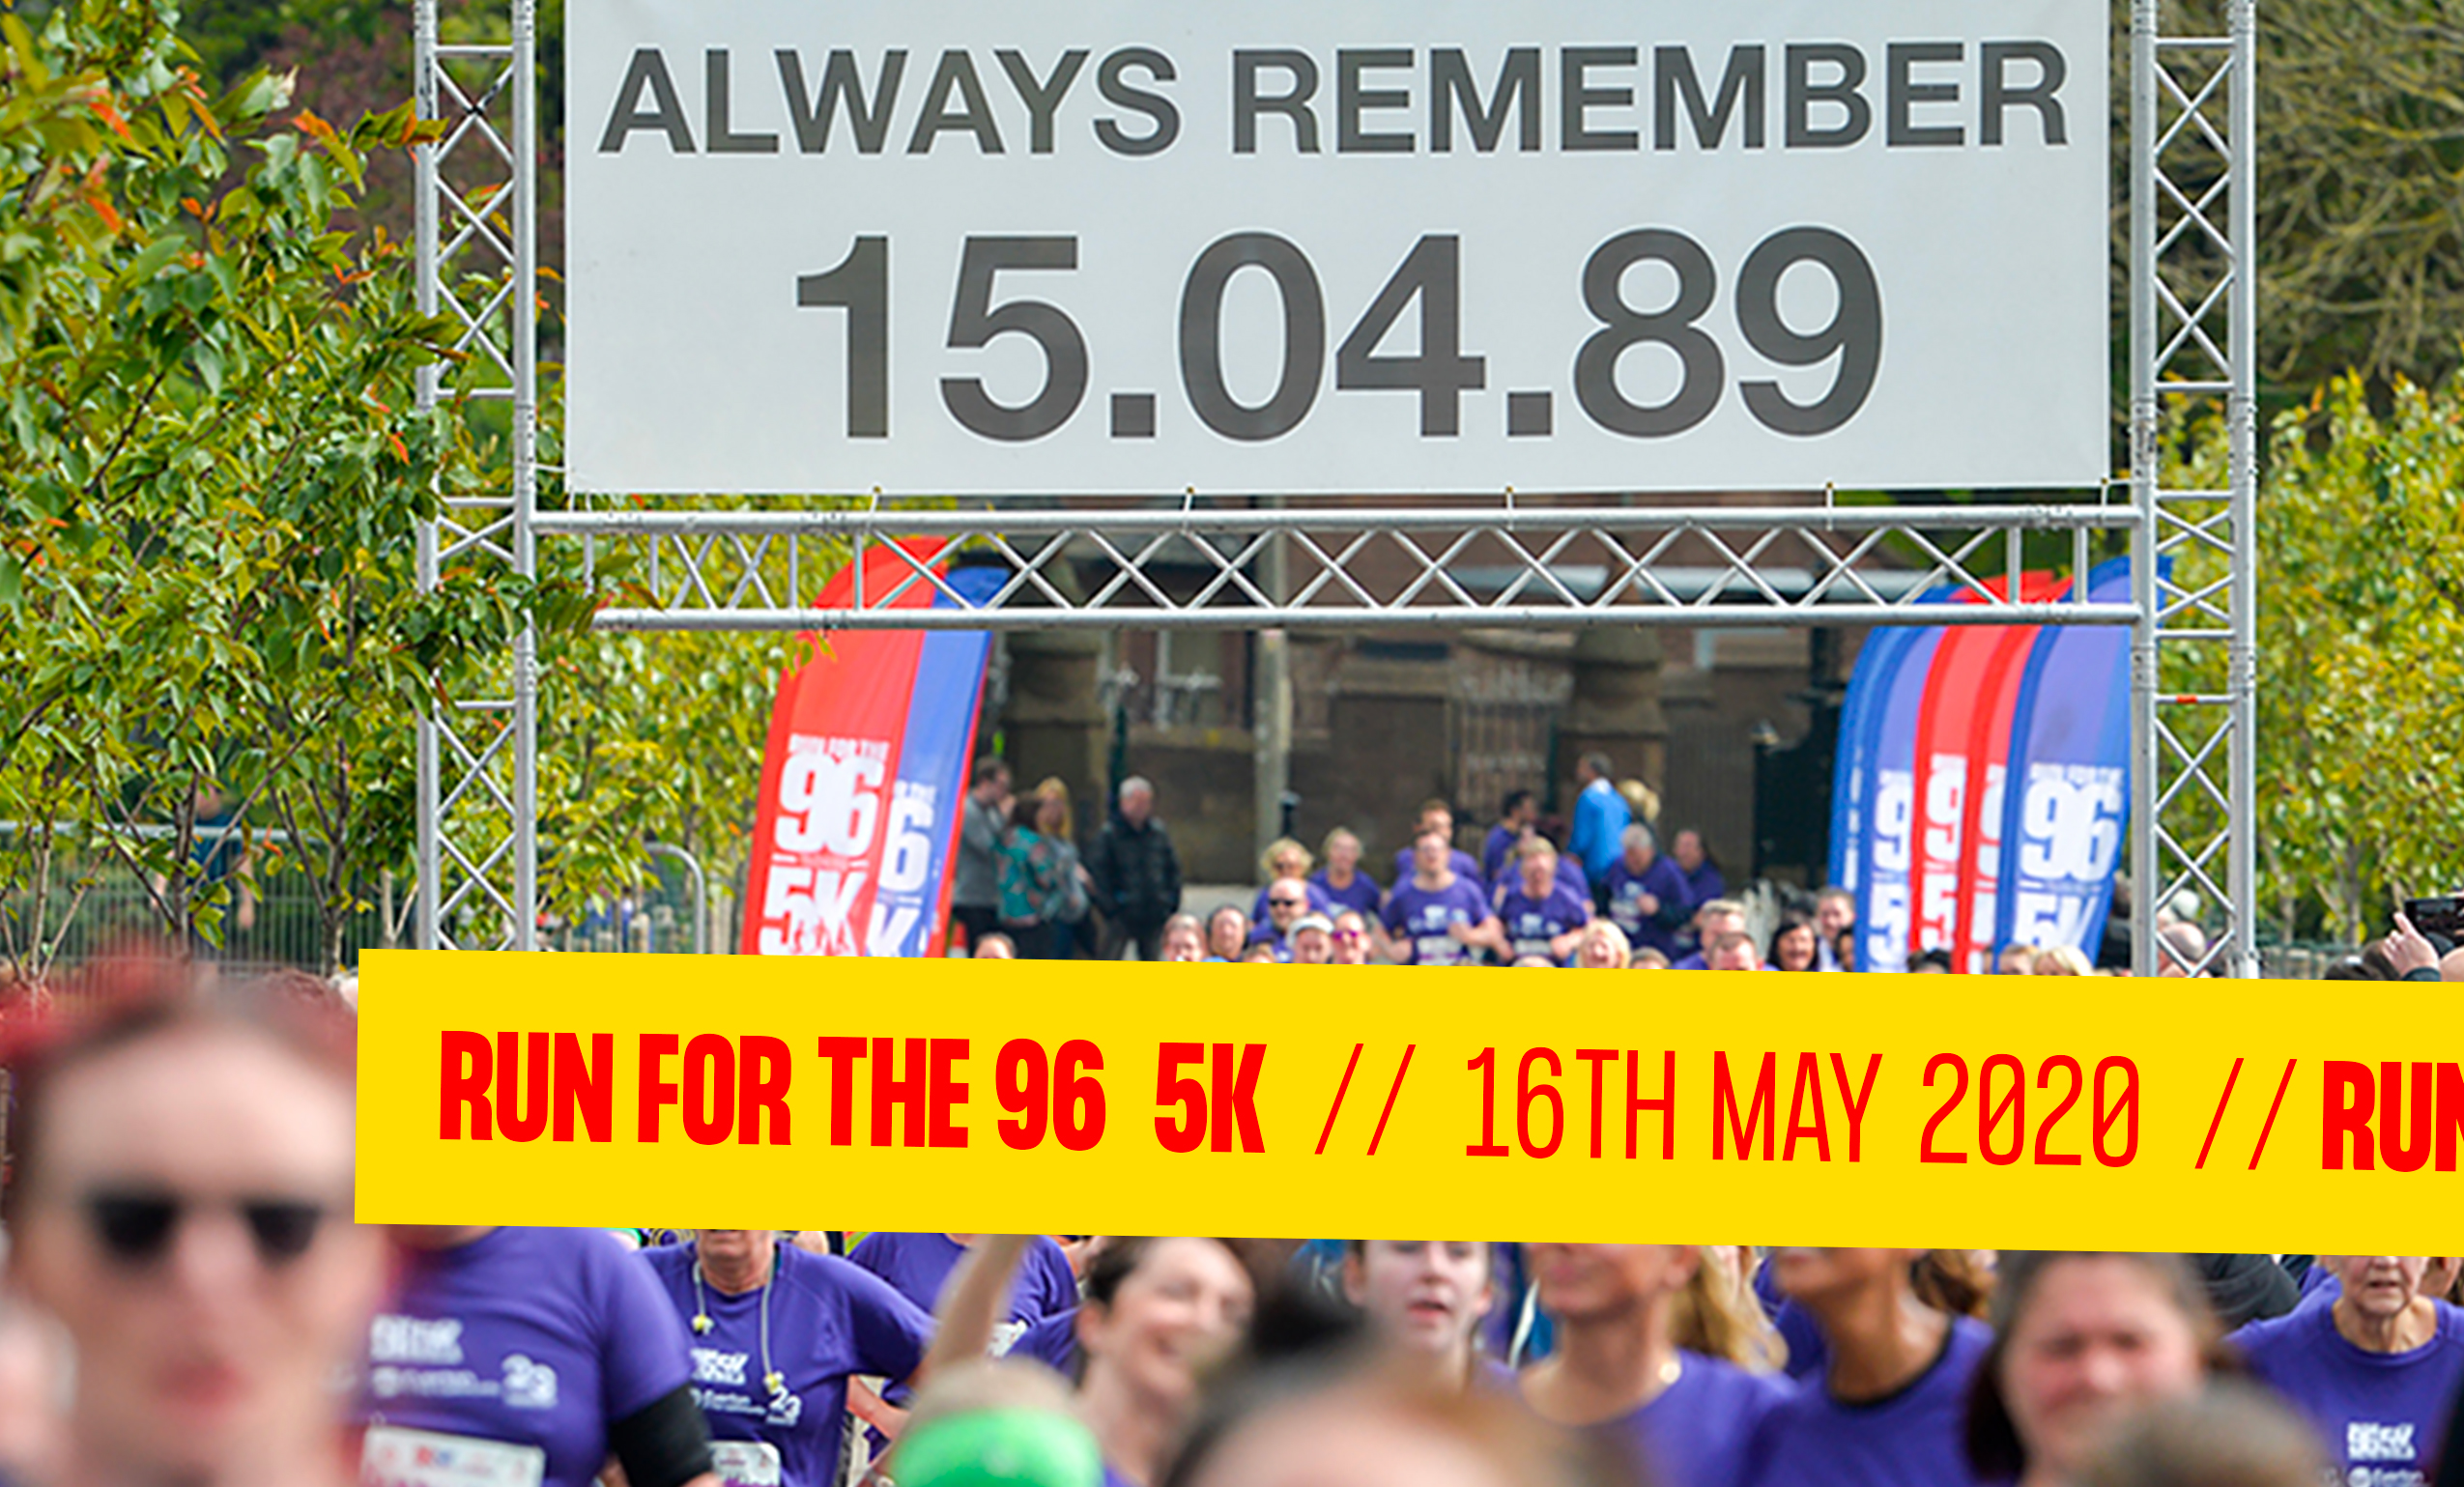 RUN FOR THE 96